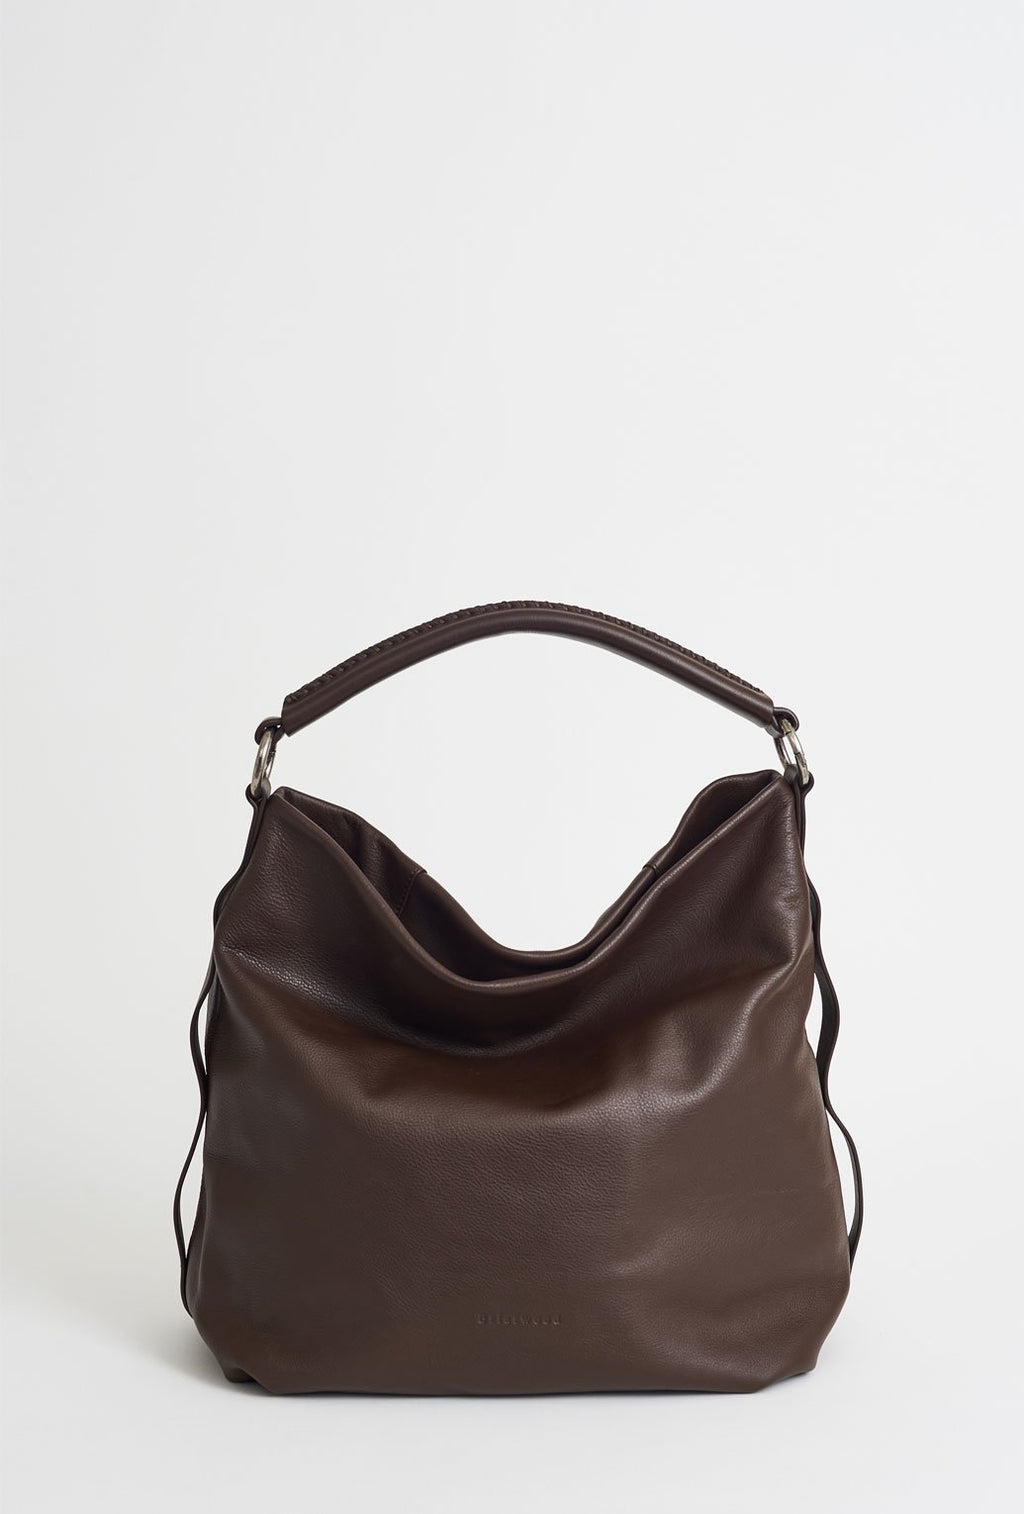 BRIARWOOD PALMER BAG - CHOCOLATE